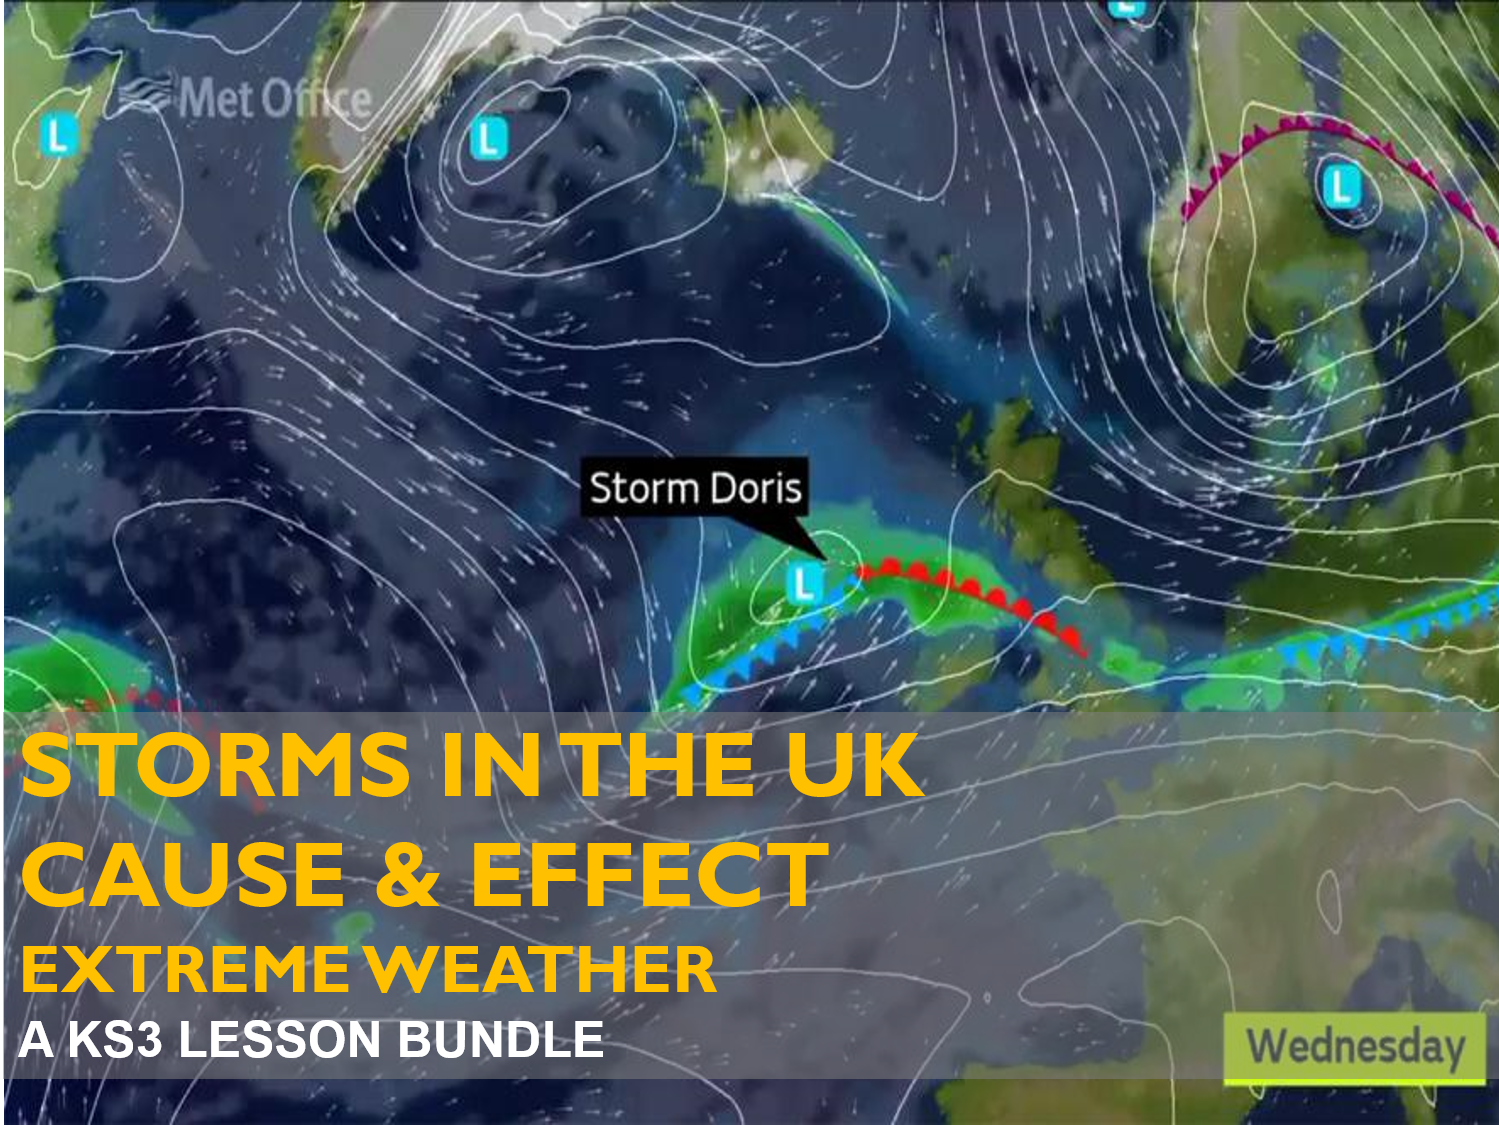 extreme weather   storms in the uk